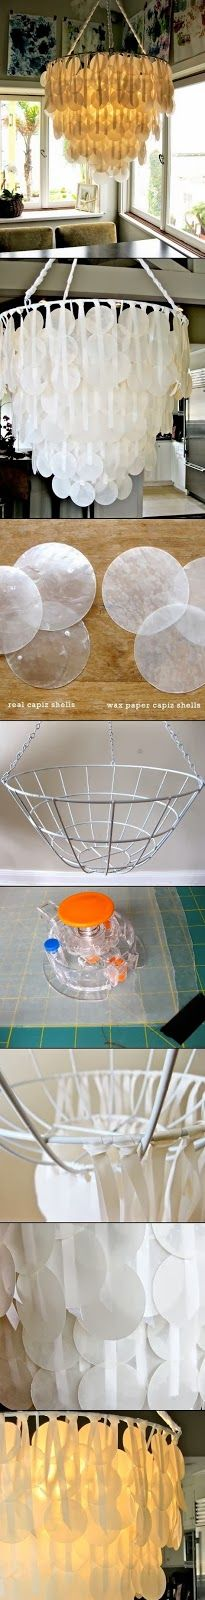 "PAPER CAPIZ SHELL CHANDELIER Materials: - hanging planter basket - white spray paint - ribbon - scissors - 1-2 rolls wax paper - 2 big pieces of parchment paper - iron - hot glue gun & glue sticks - circle cutter (i didn't have any luck with a ""punch"") - cutting mat  http://diyiydidydyiydi.blogspot.co.uk/2013_10_01_archive.html"